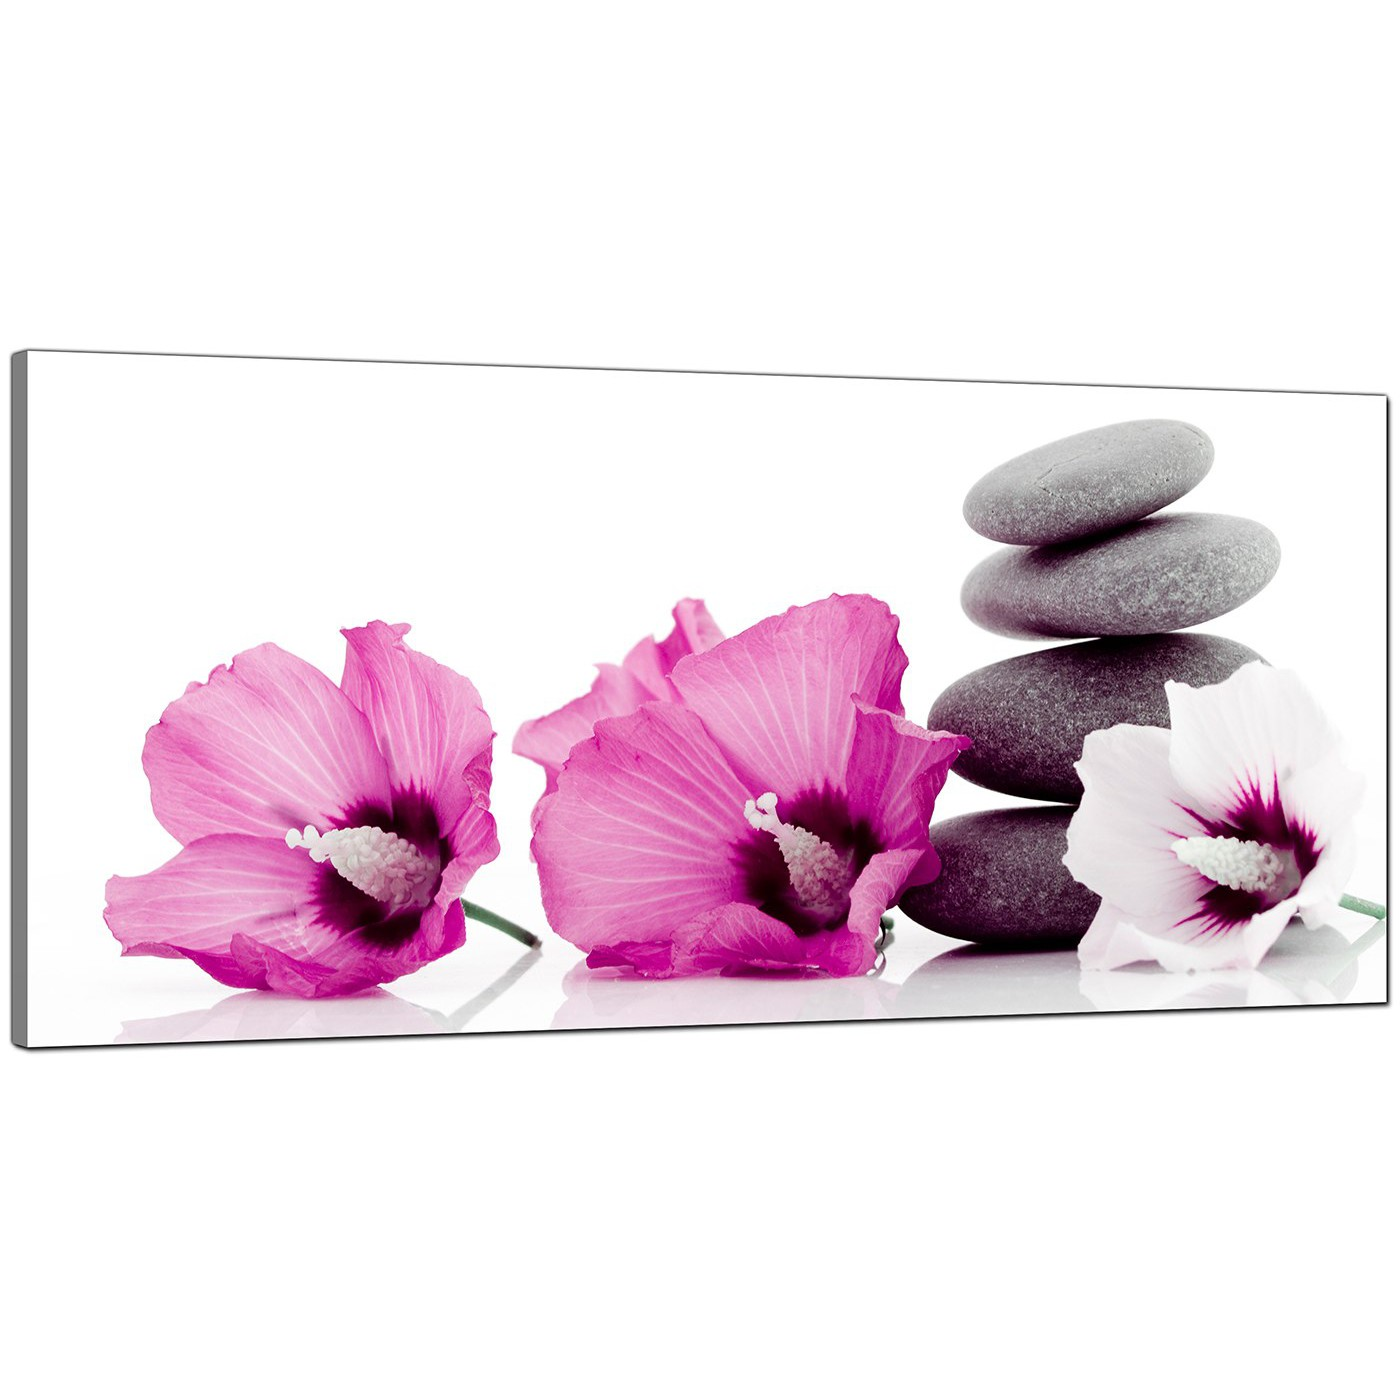 Large Pink Canvas Prints Of Flowers And Pebbles